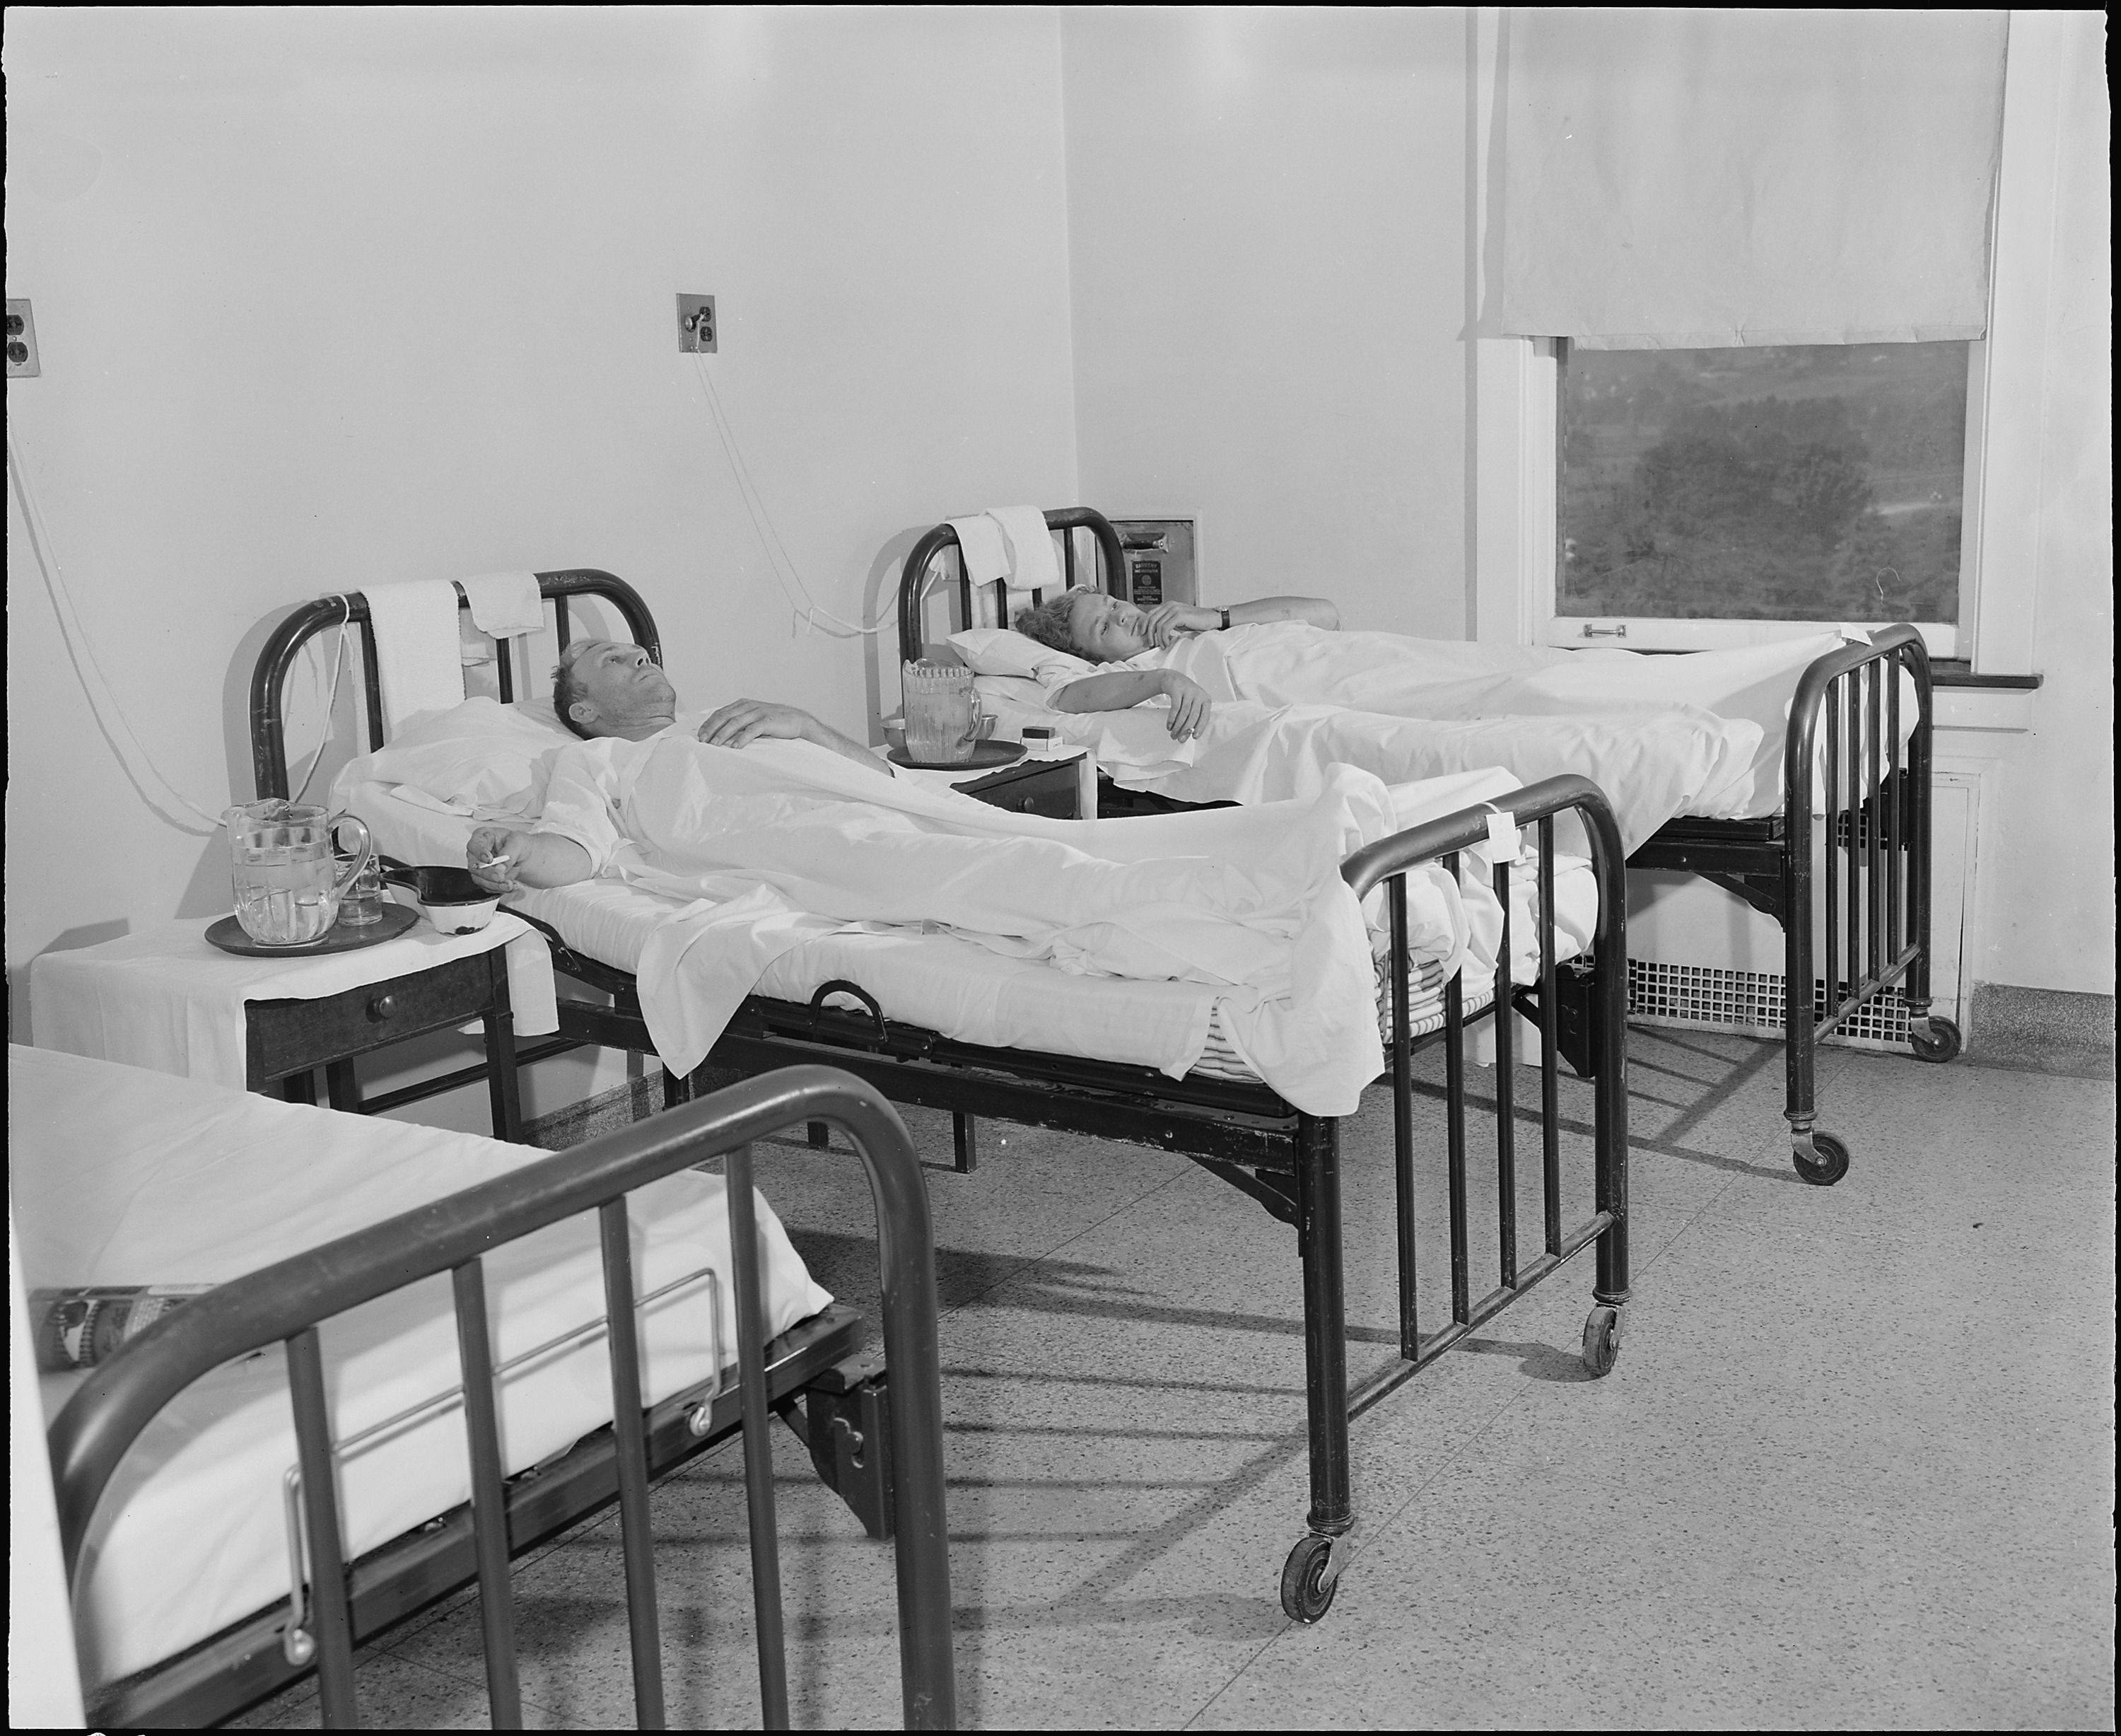 Black and white photo of two patients laying in hospital